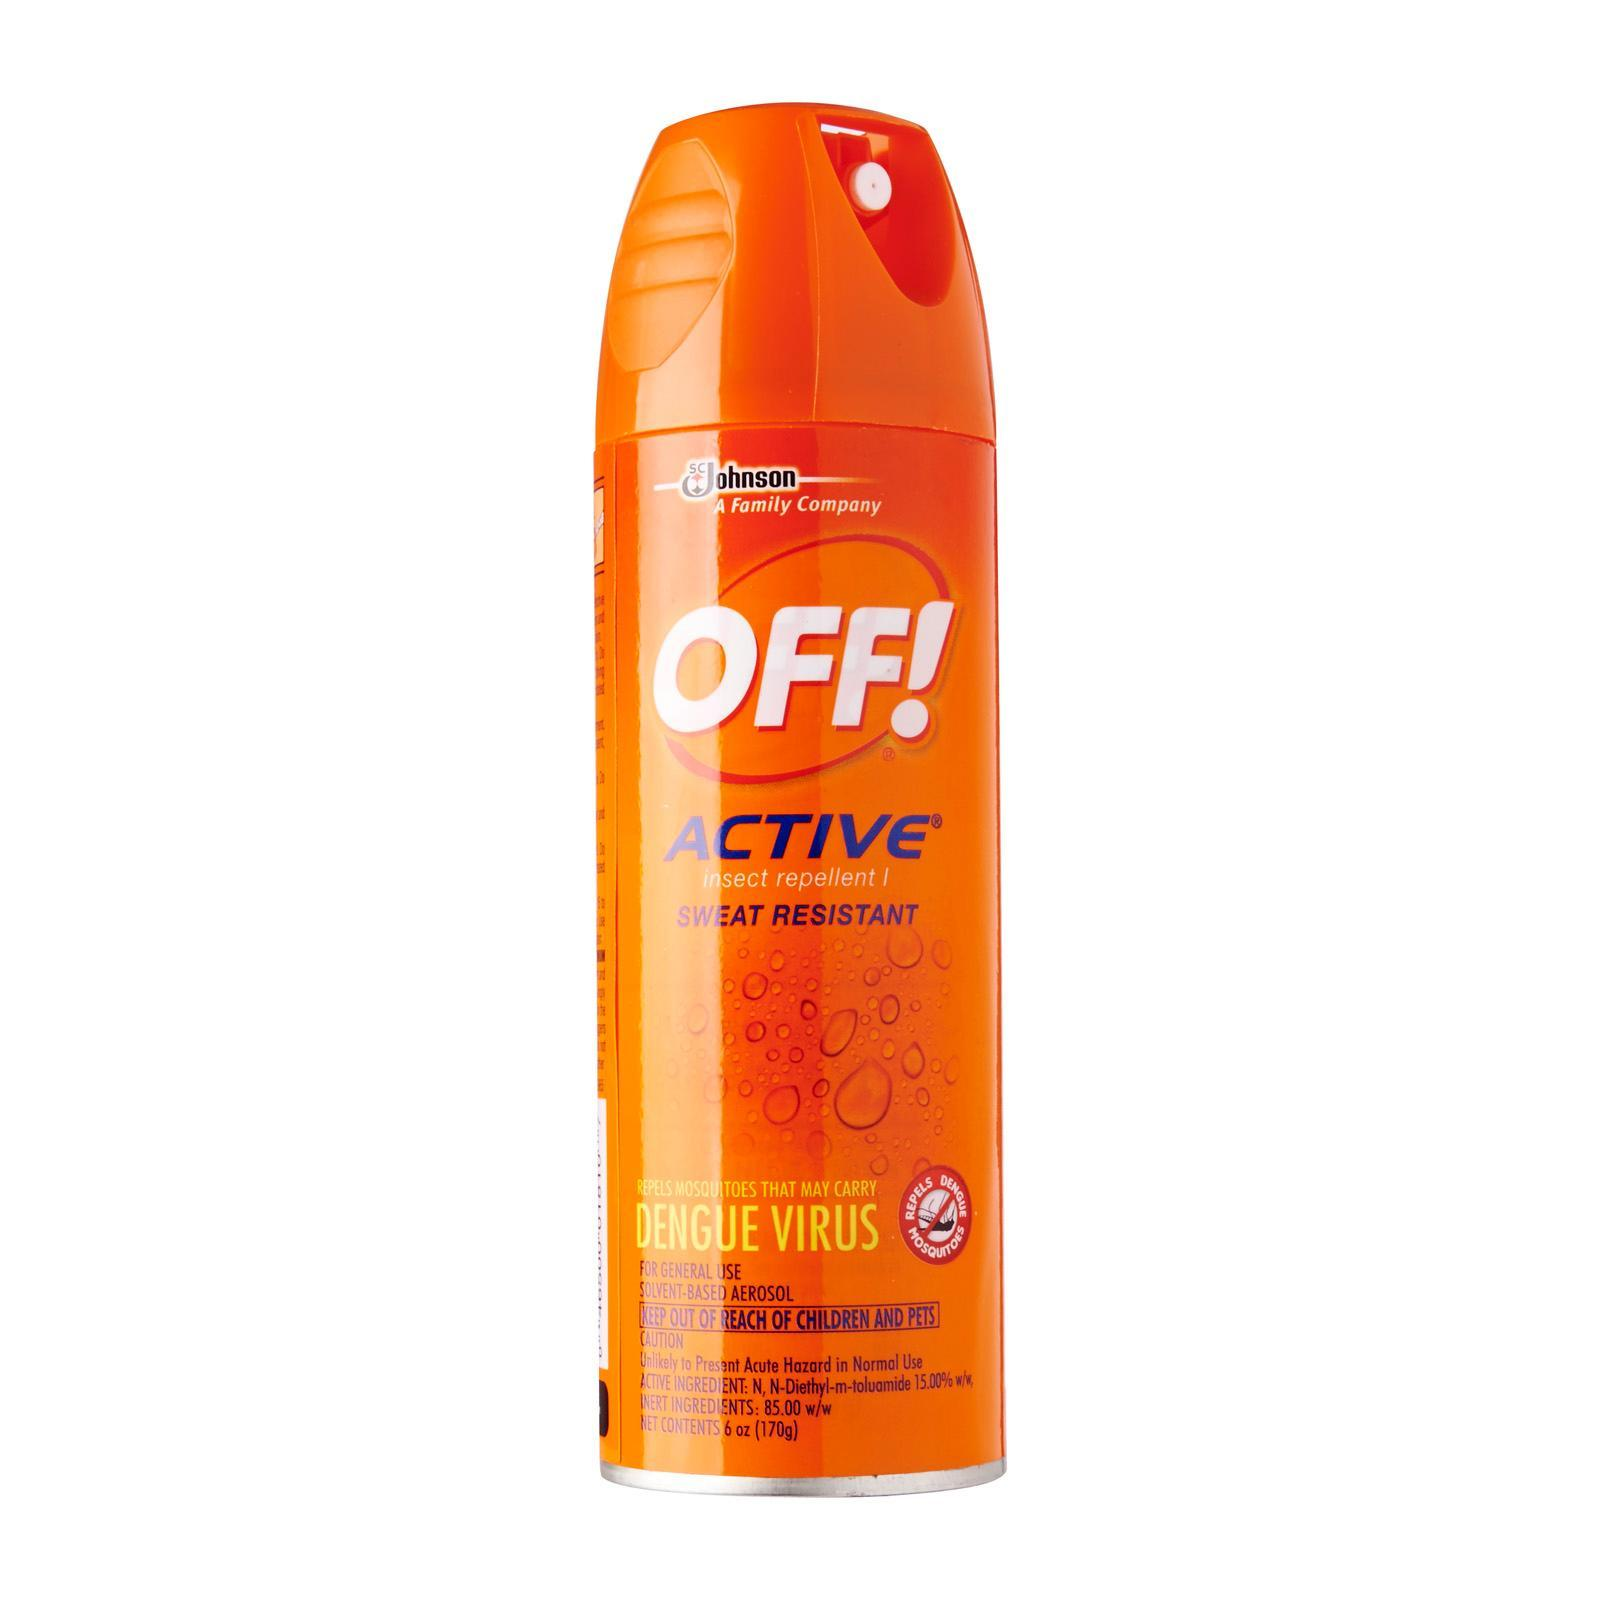 Off! Aerosol Spray Insect Repellent By Redmart.